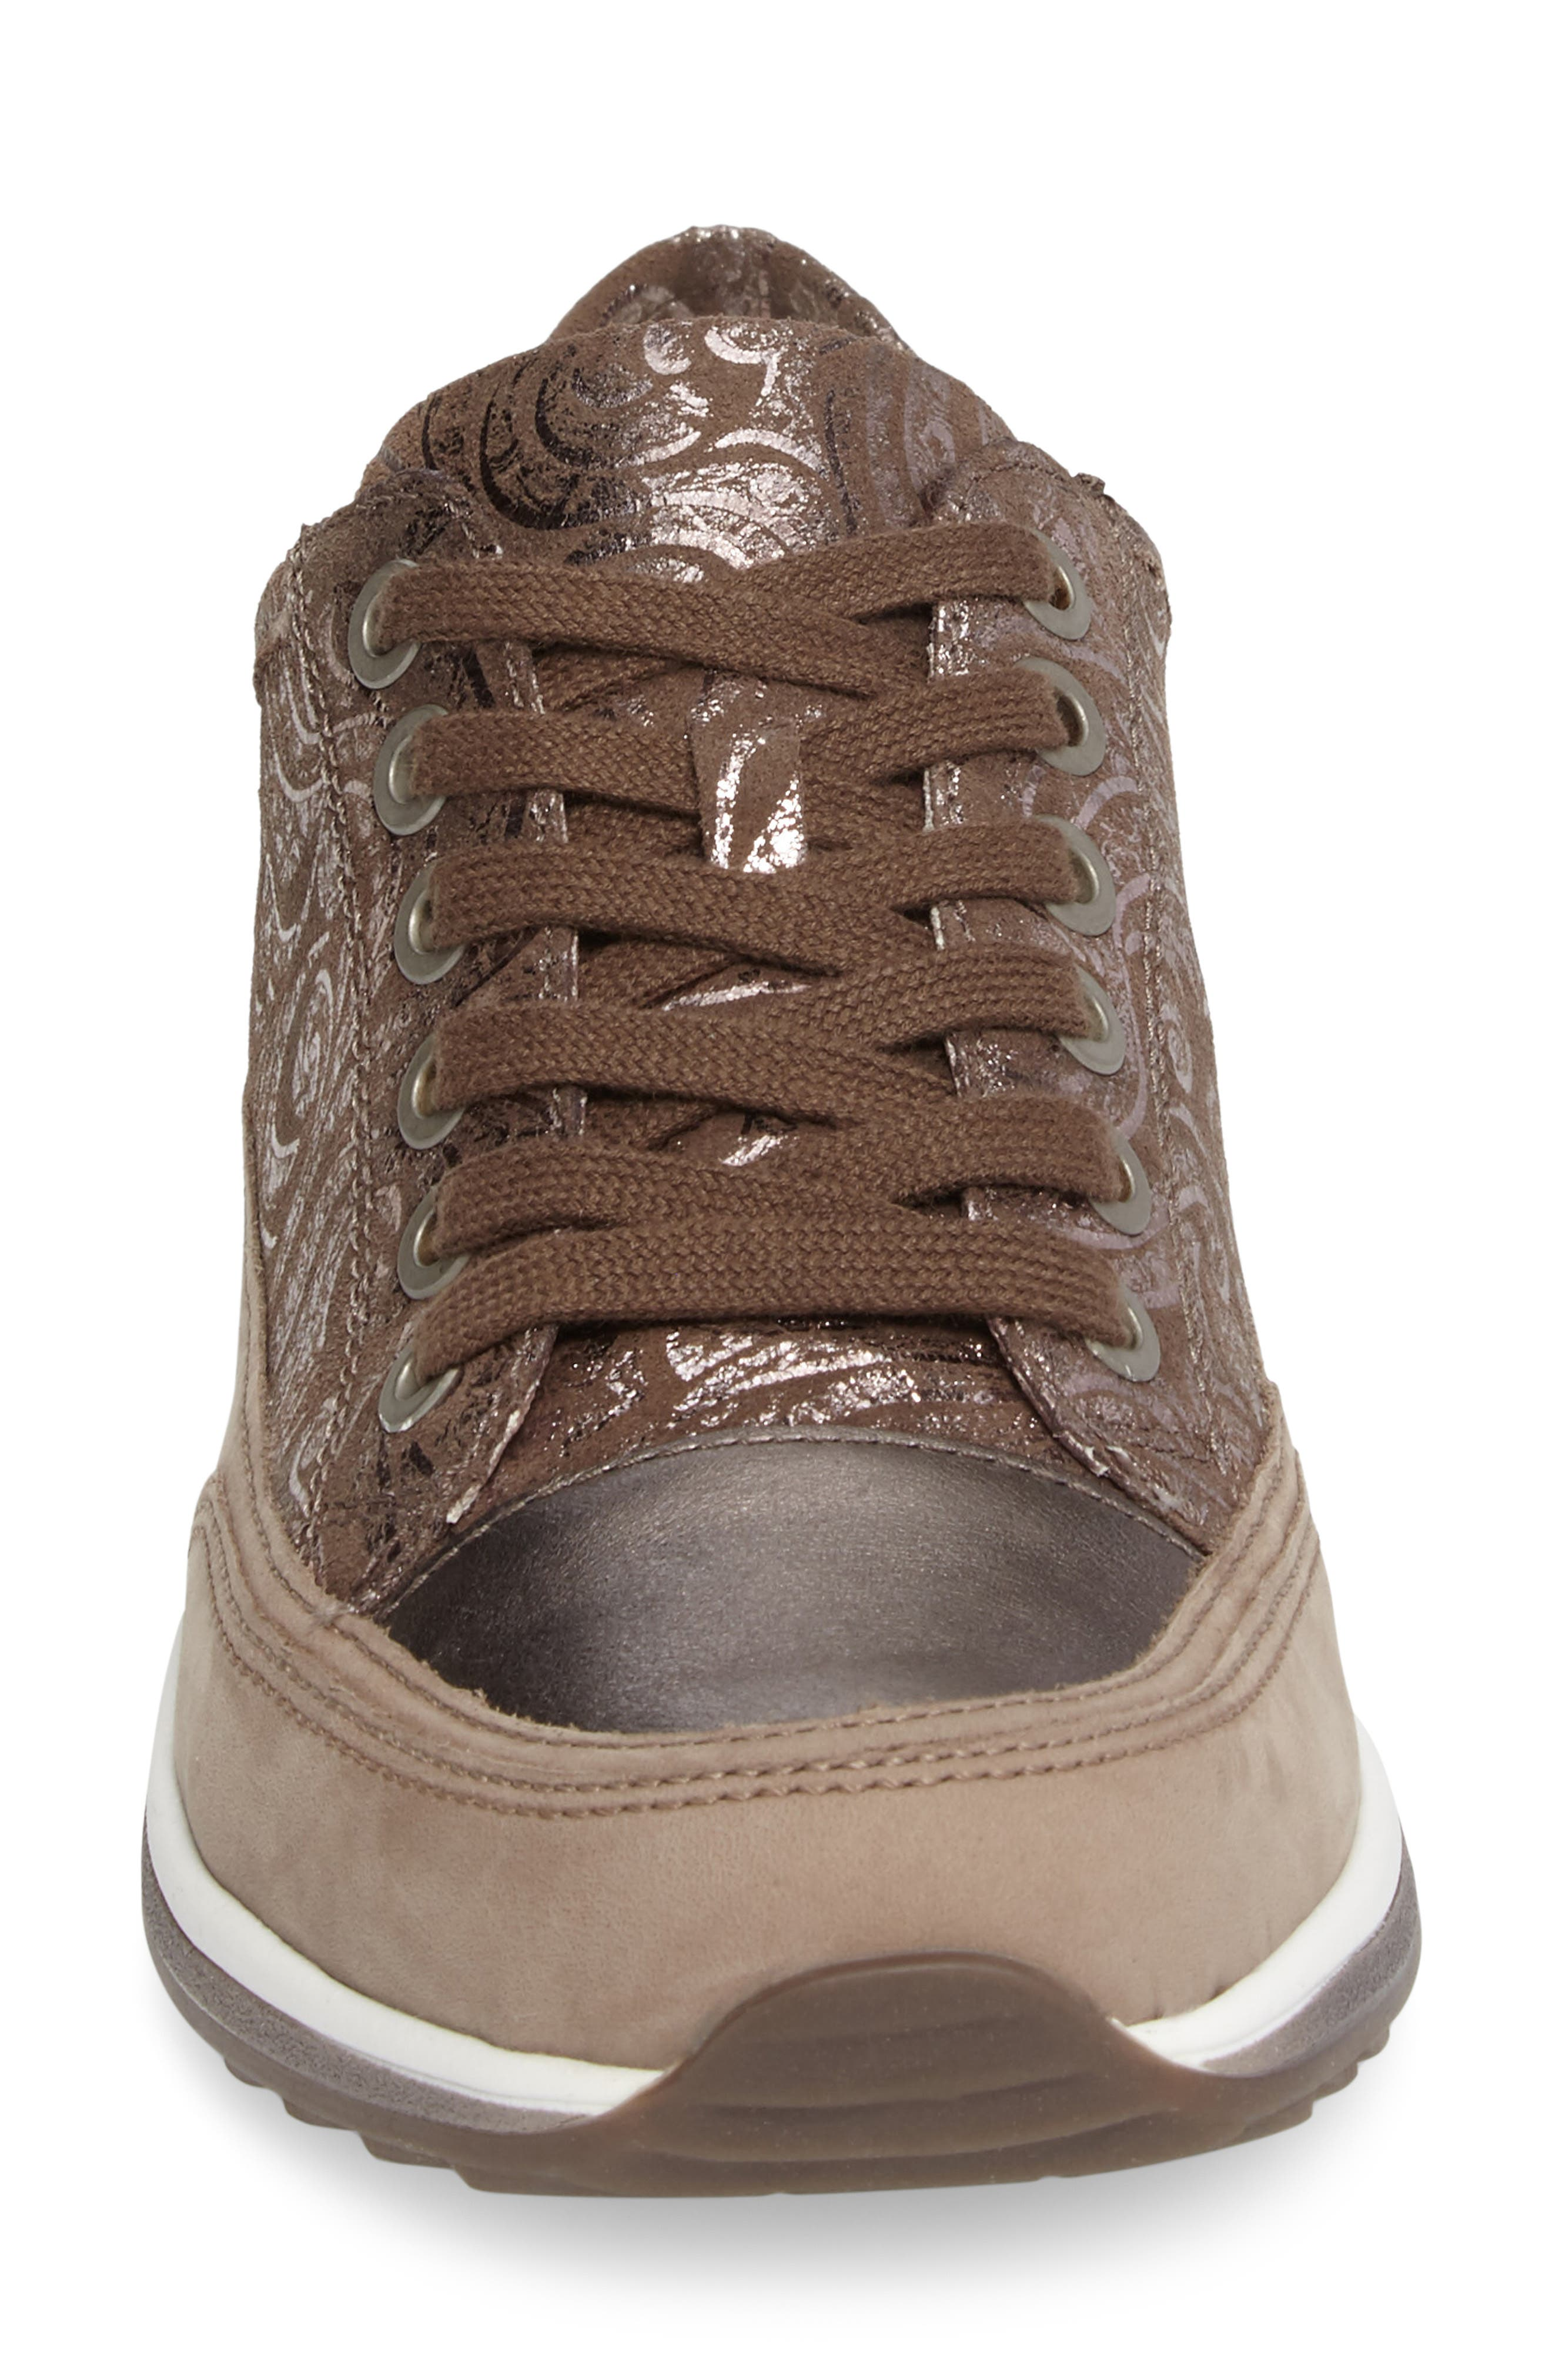 Hermione Sneaker,                             Alternate thumbnail 4, color,                             Taupe Combo Leather